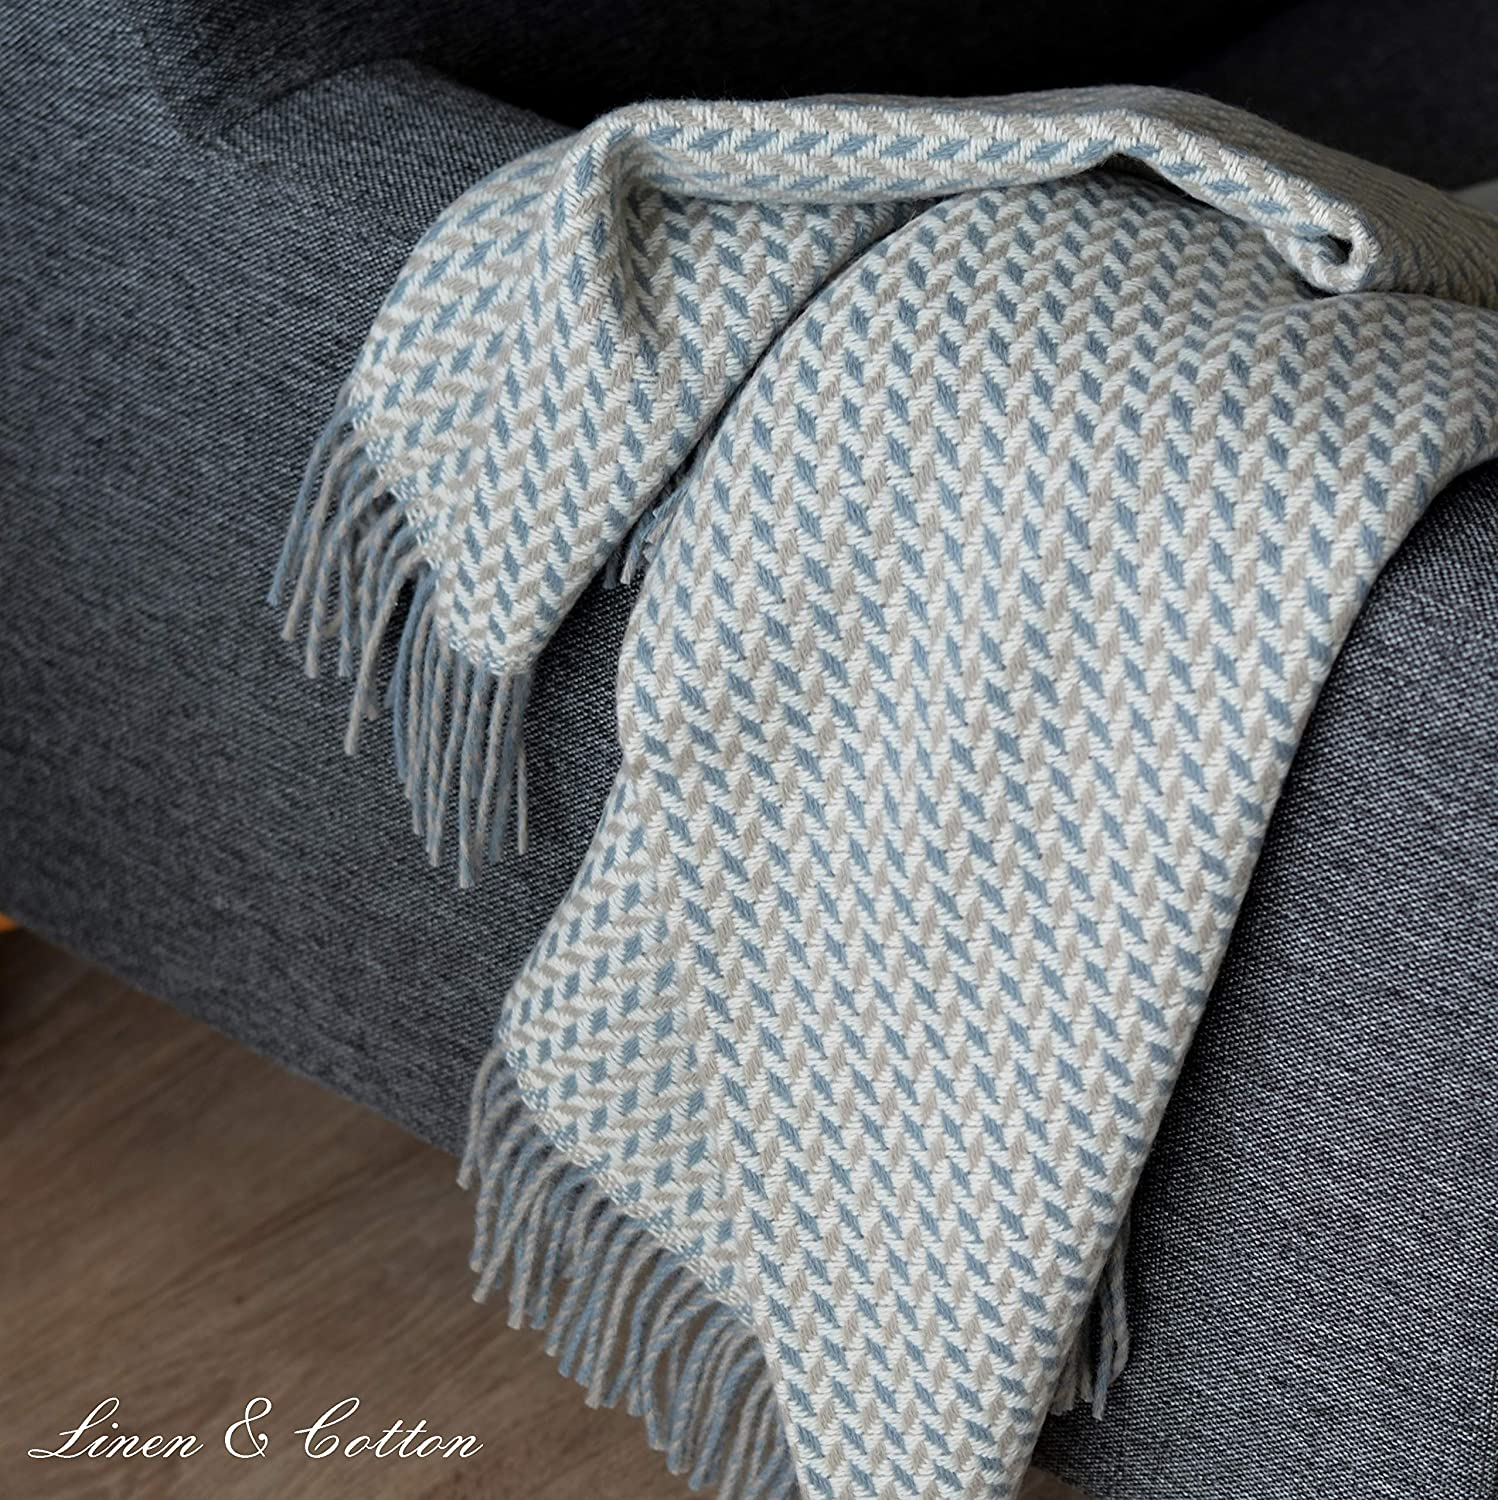 Linen & Cotton Manta Plaid de Sofá/Cama Valencia - 100% Lana ...